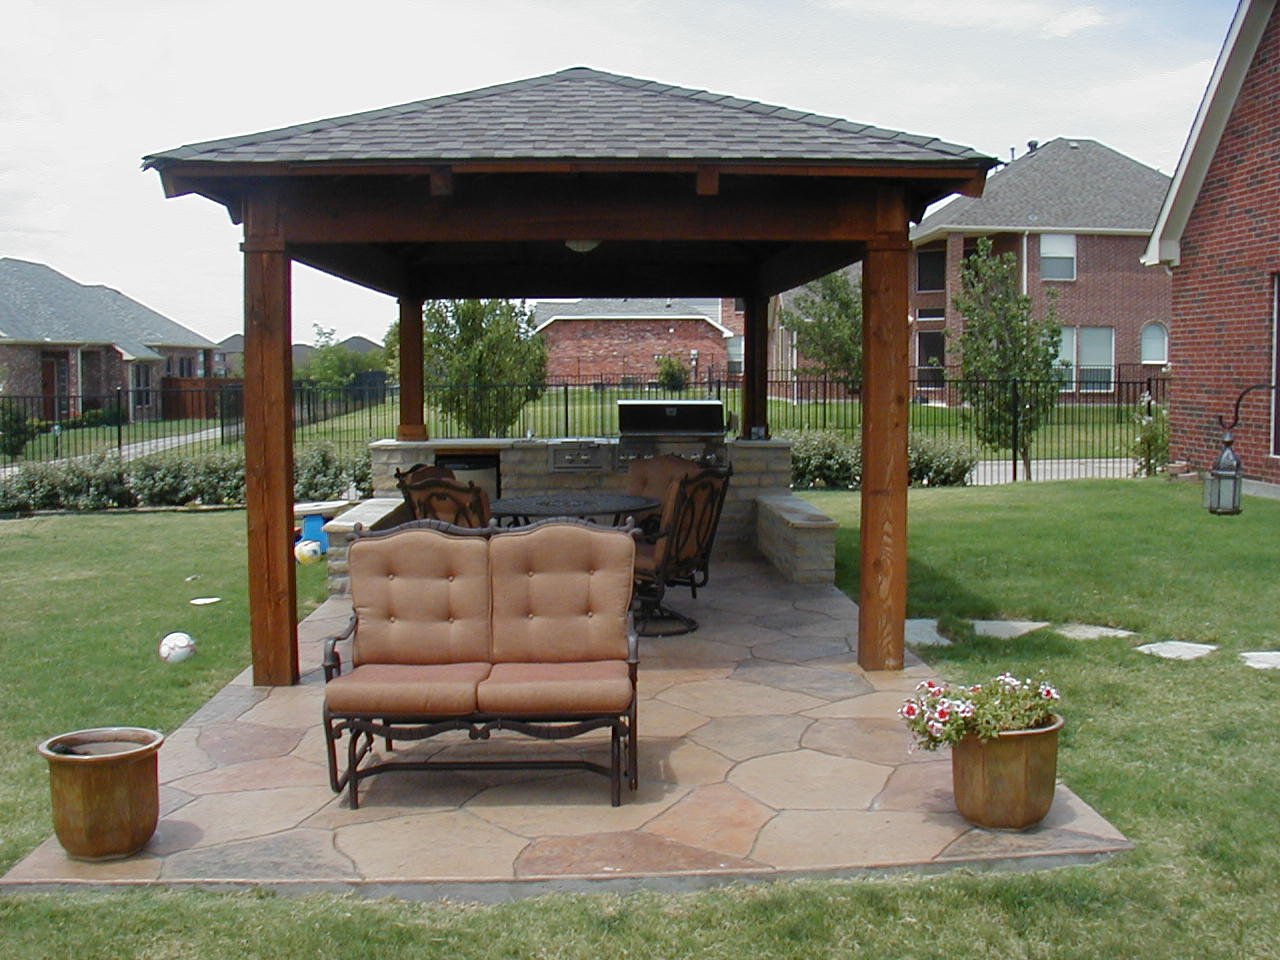 Small backyard covered patio ideas - Outdoor Covered Patio Designs Backyard Covered Patio Designs Design736552 Covered Patio Ideas For Backyard 17 Best